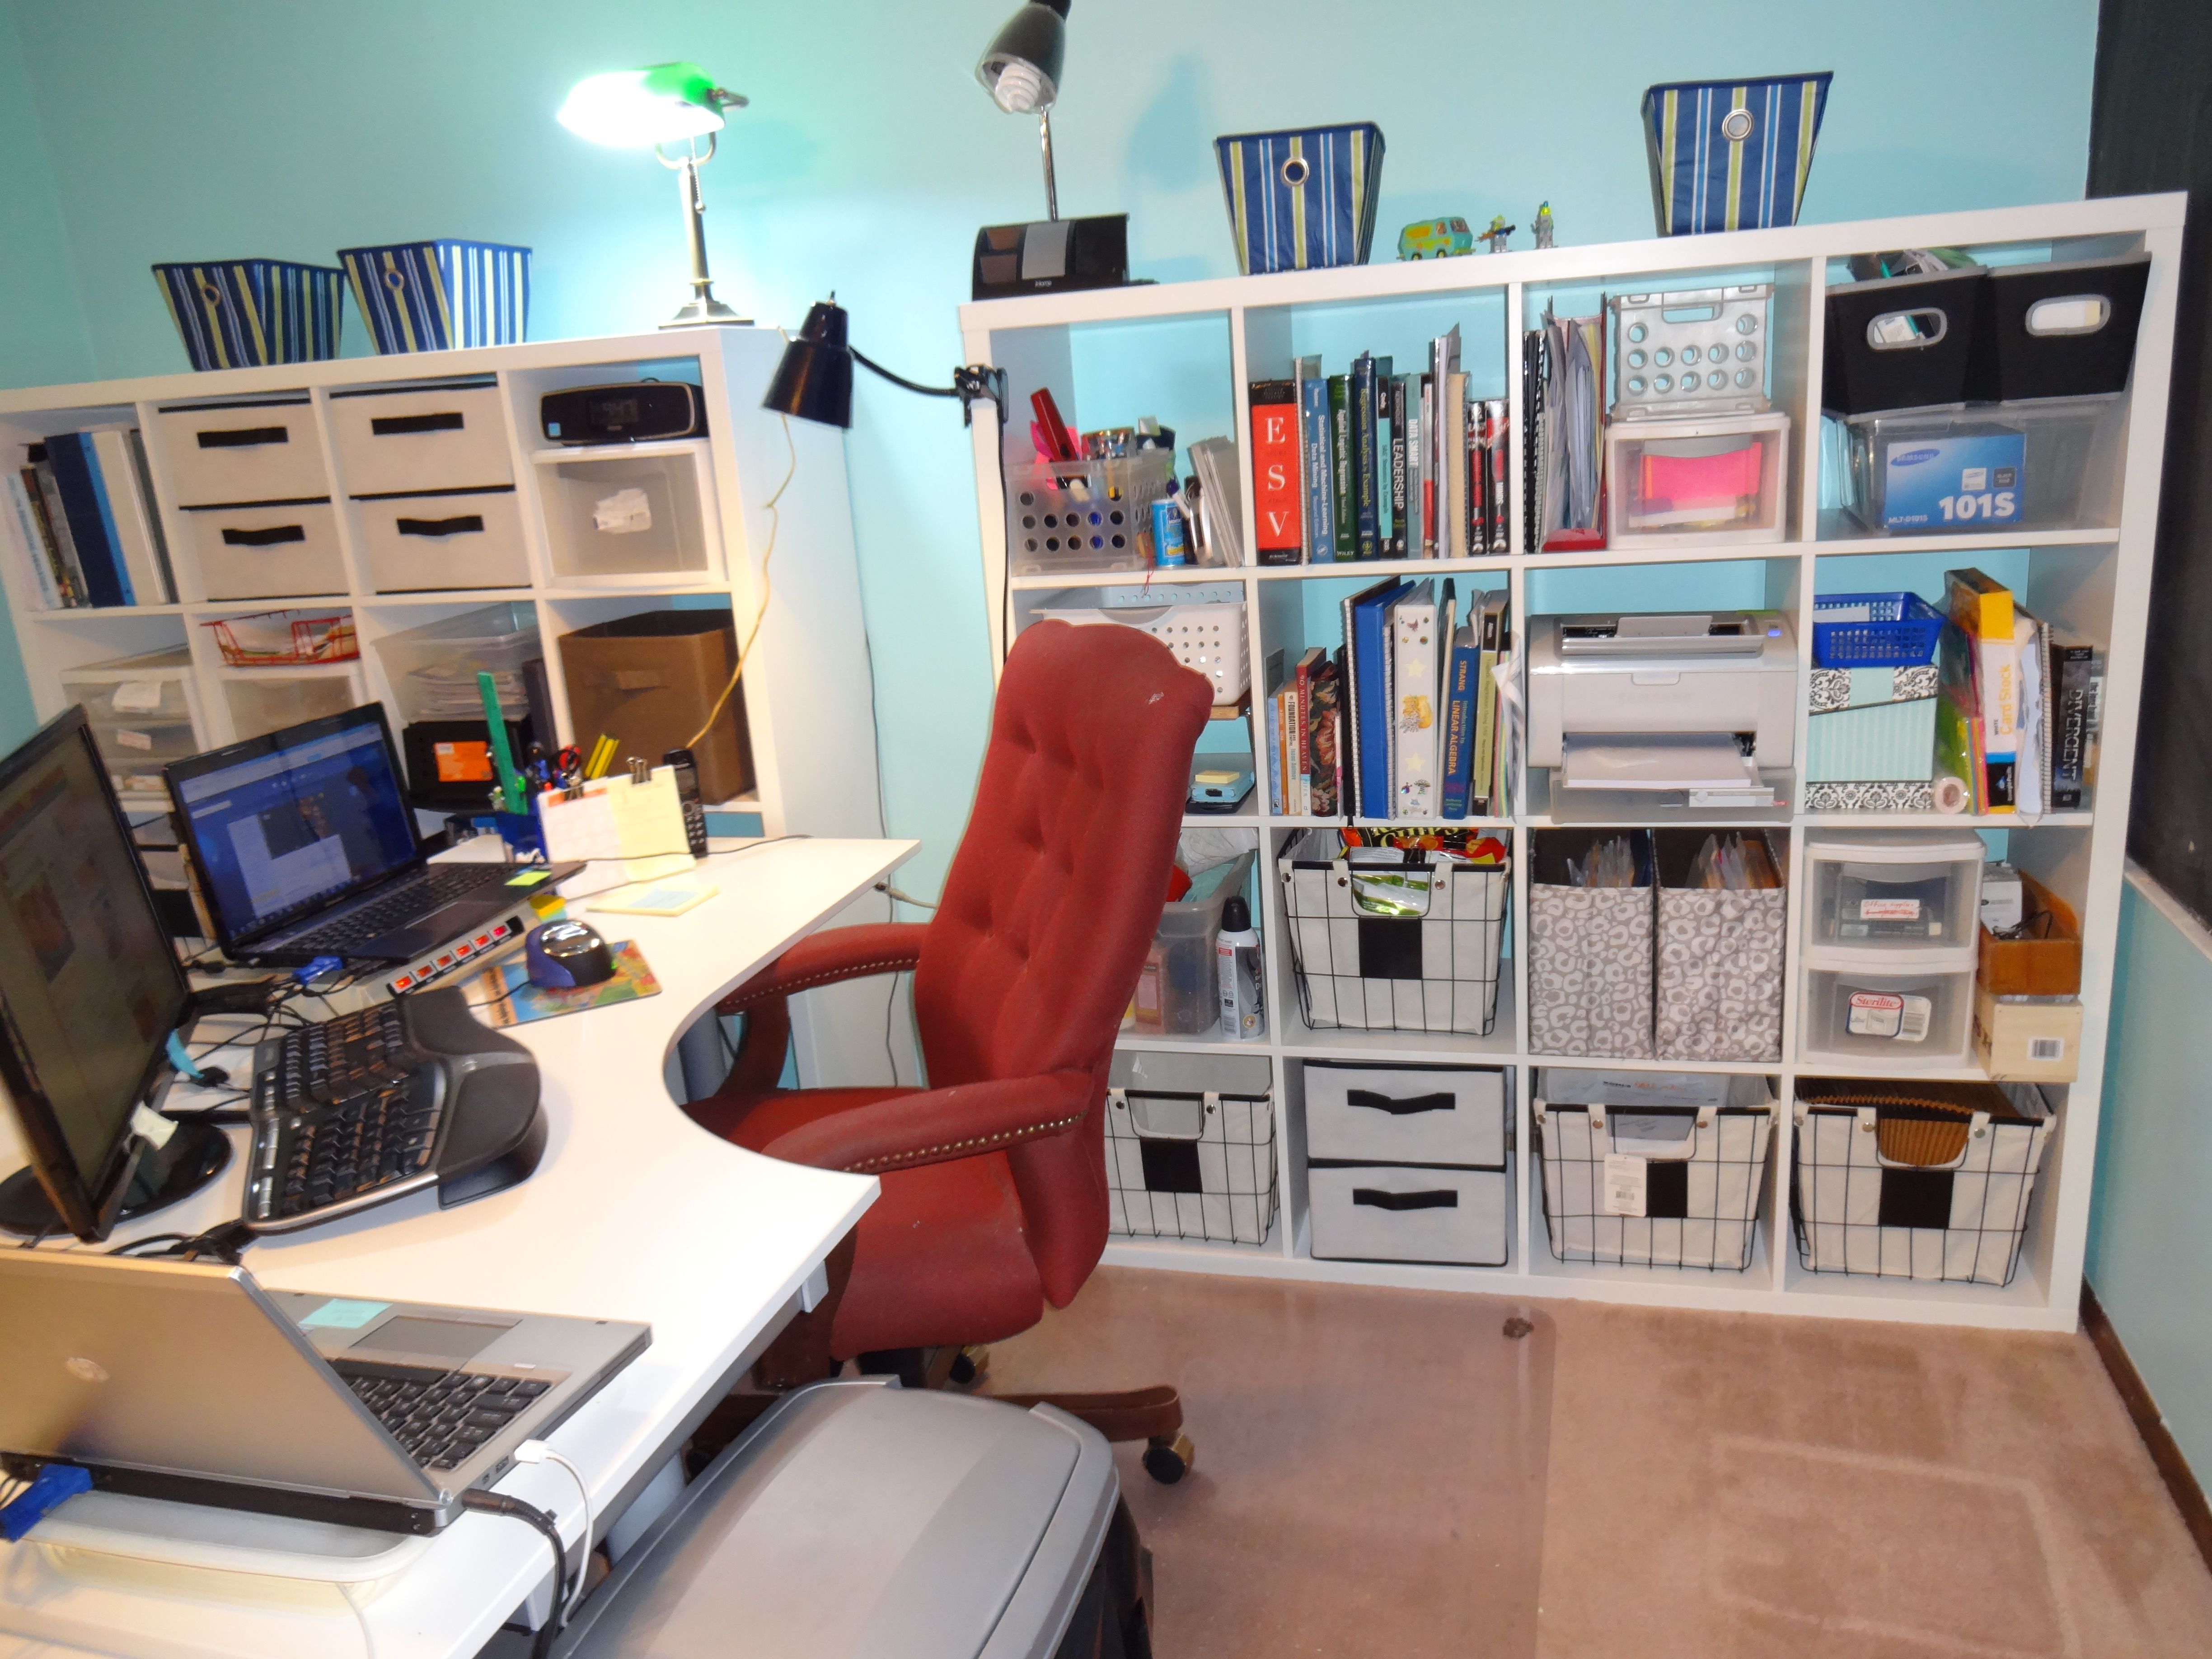 Ikea Home Office Galant new kallax shelves and a galant desk from ikea. wire baskets from